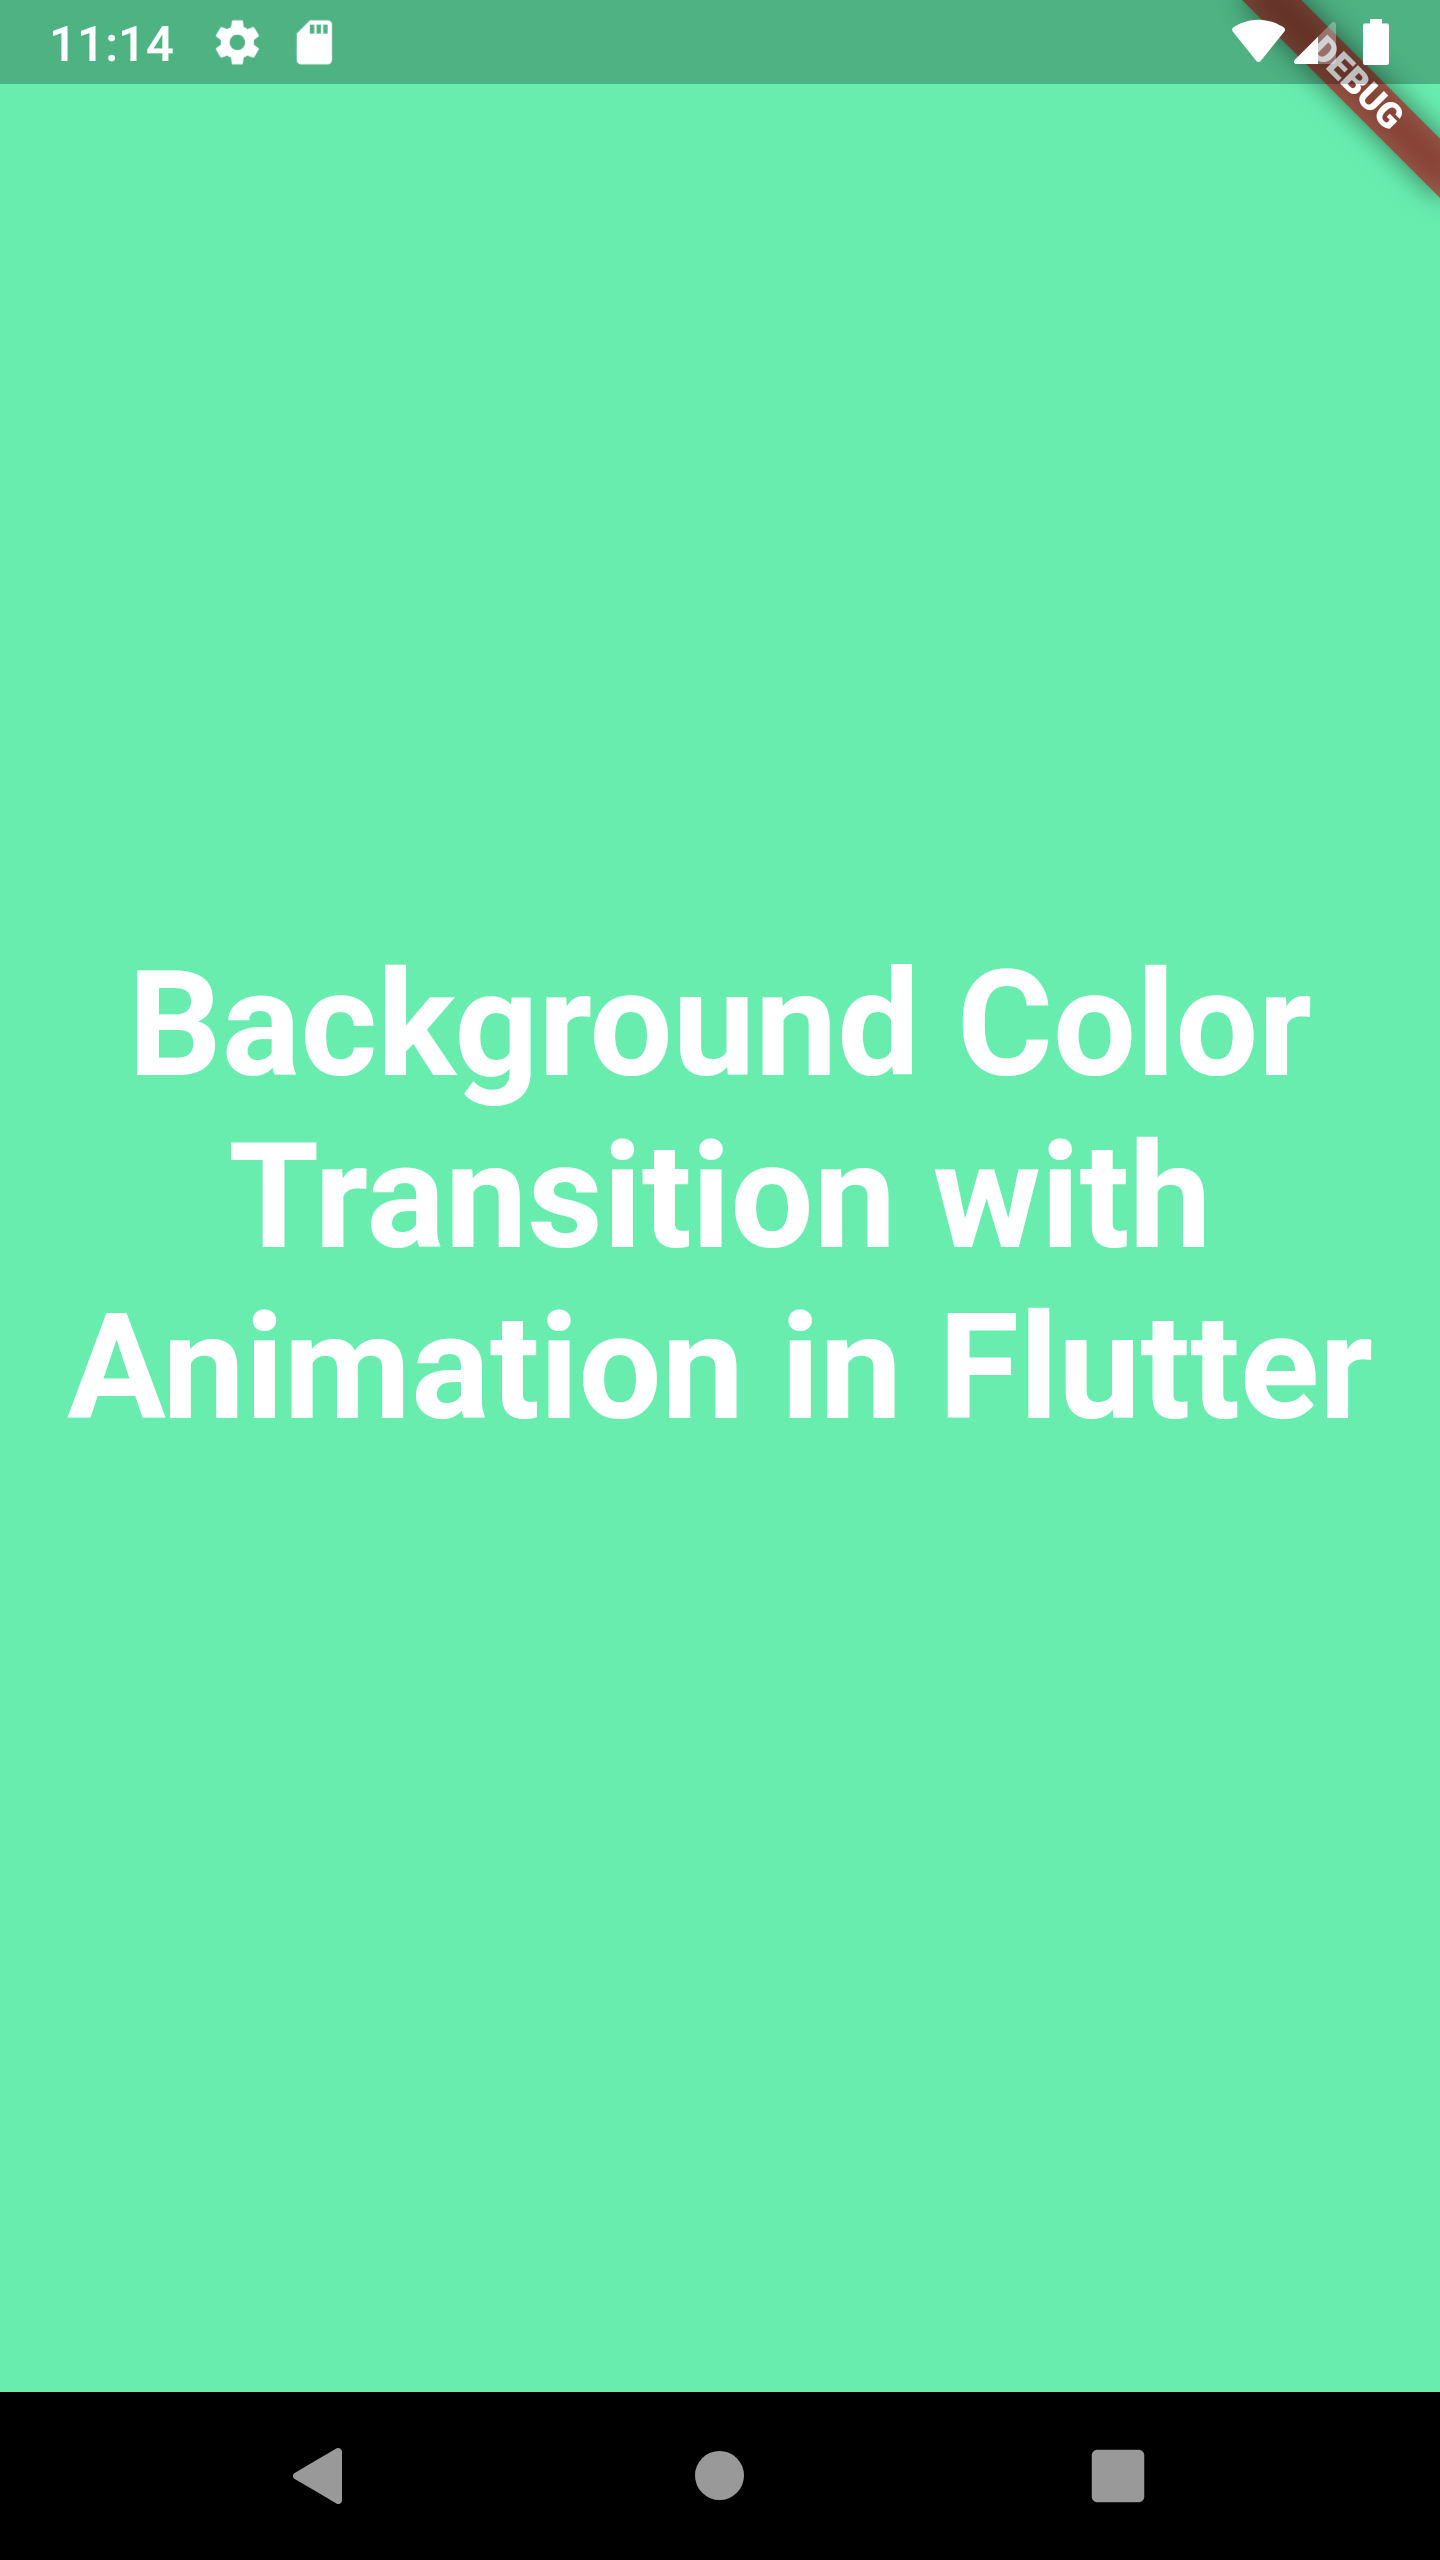 Change Background Color of Container Using Animation in Flutter